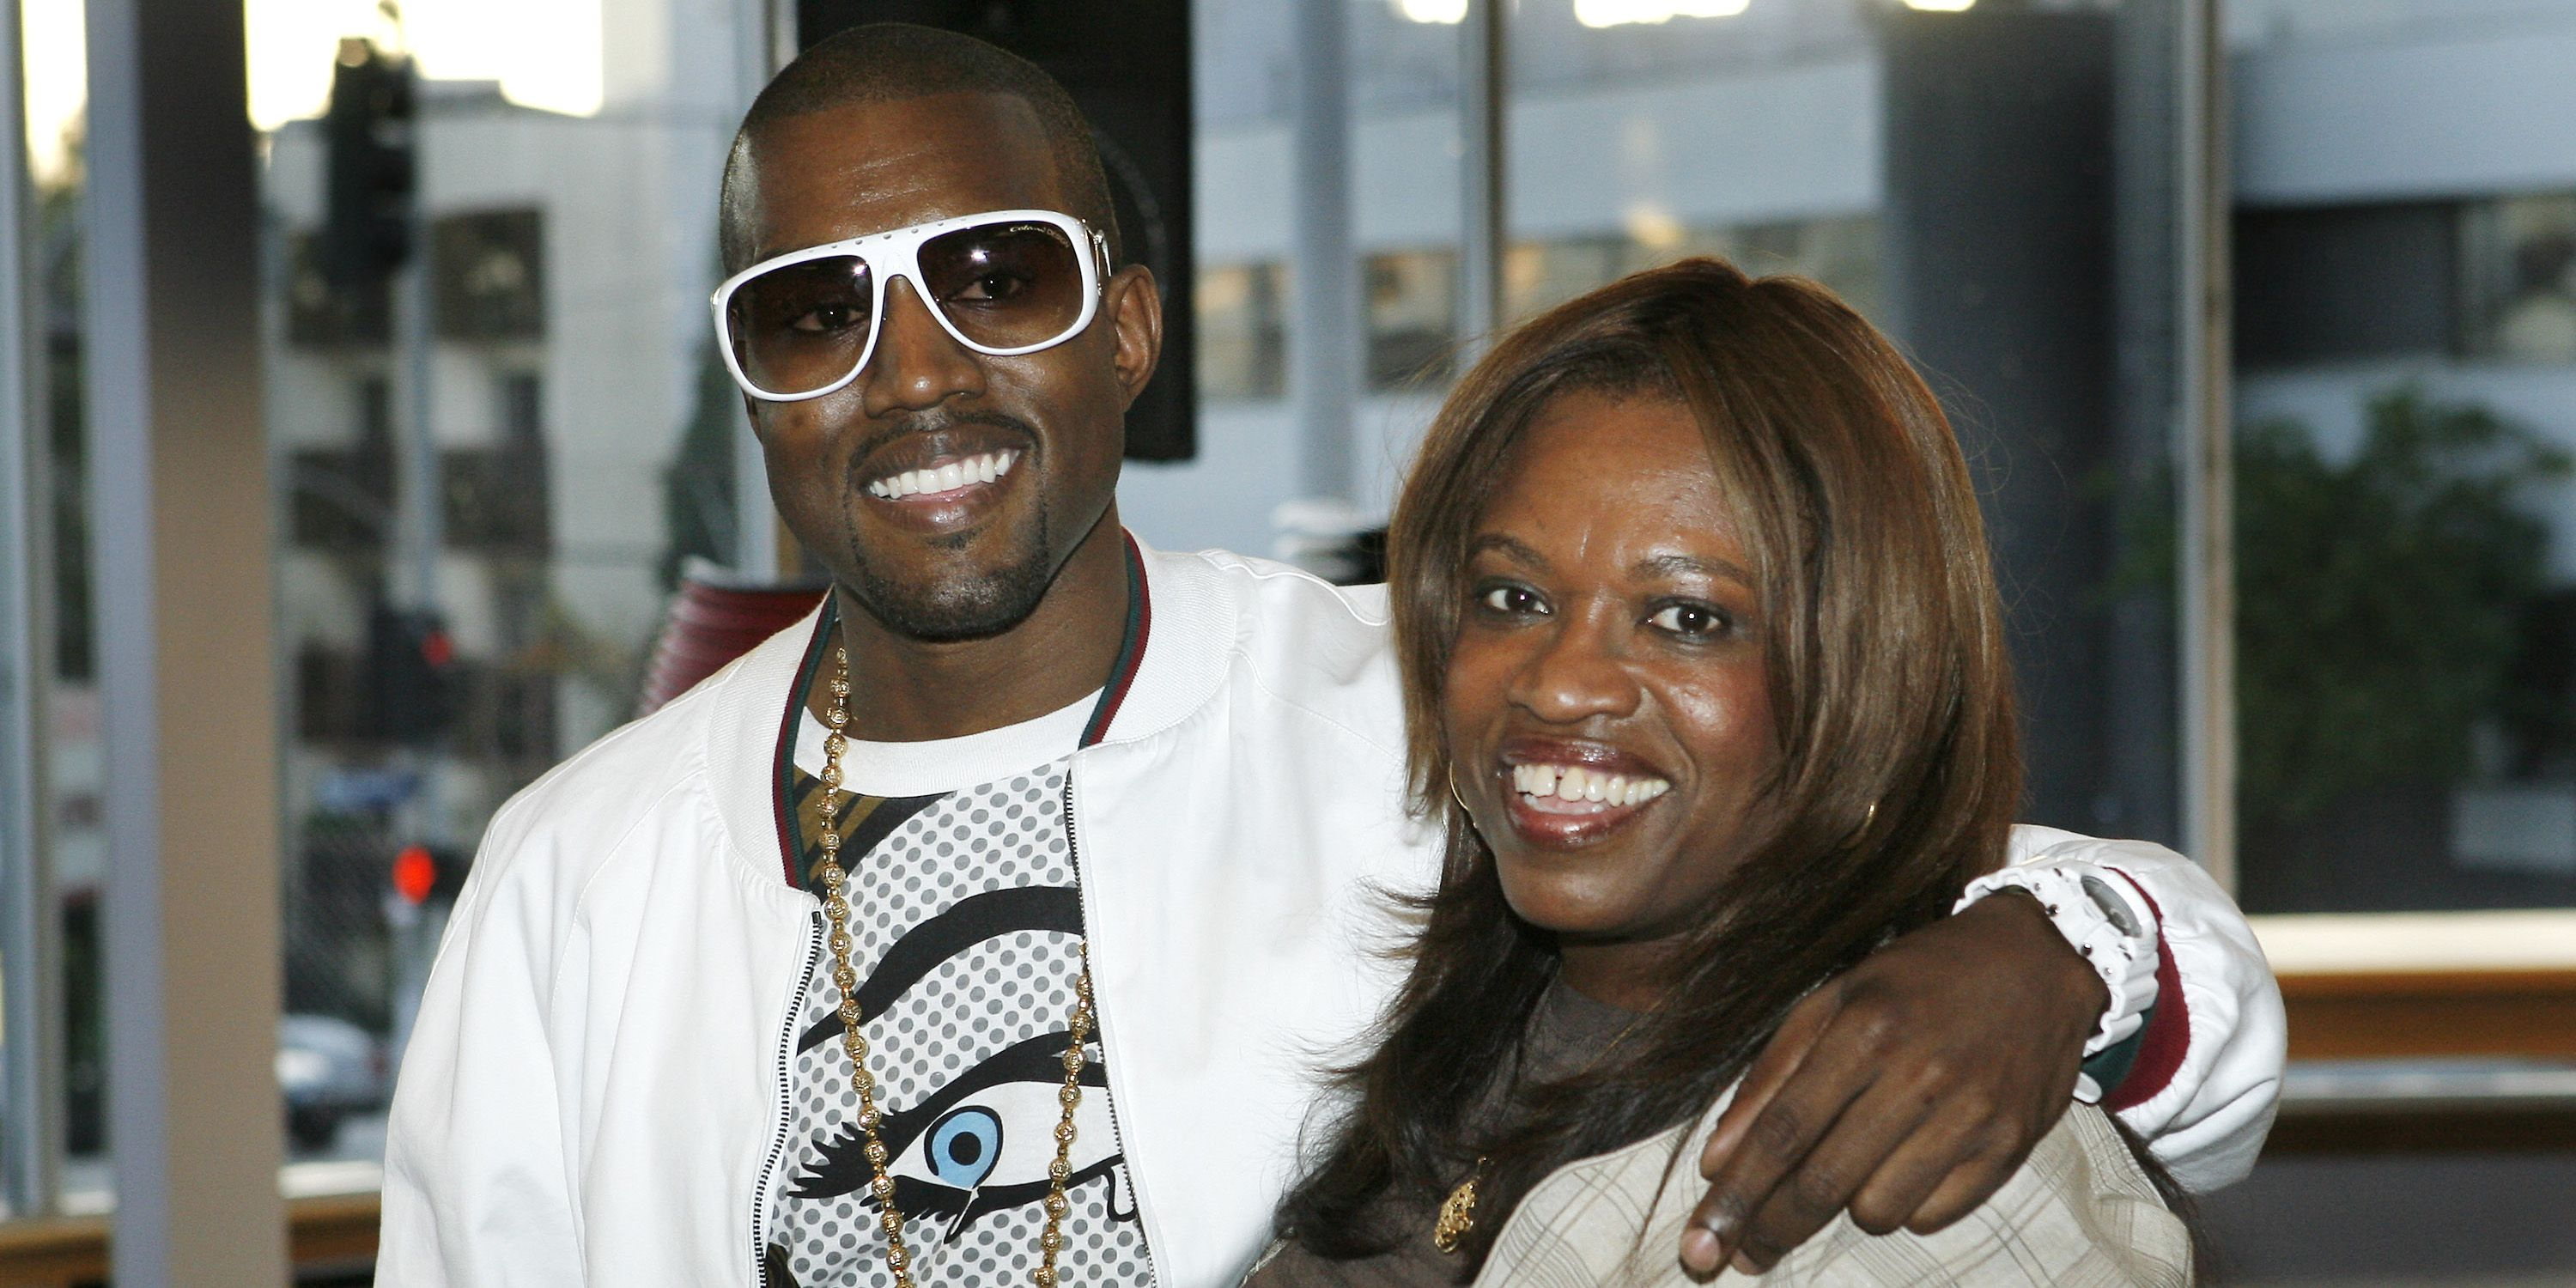 792ebbd340 Kanye West Just Announced His New Album Is Related to His Mother s Death